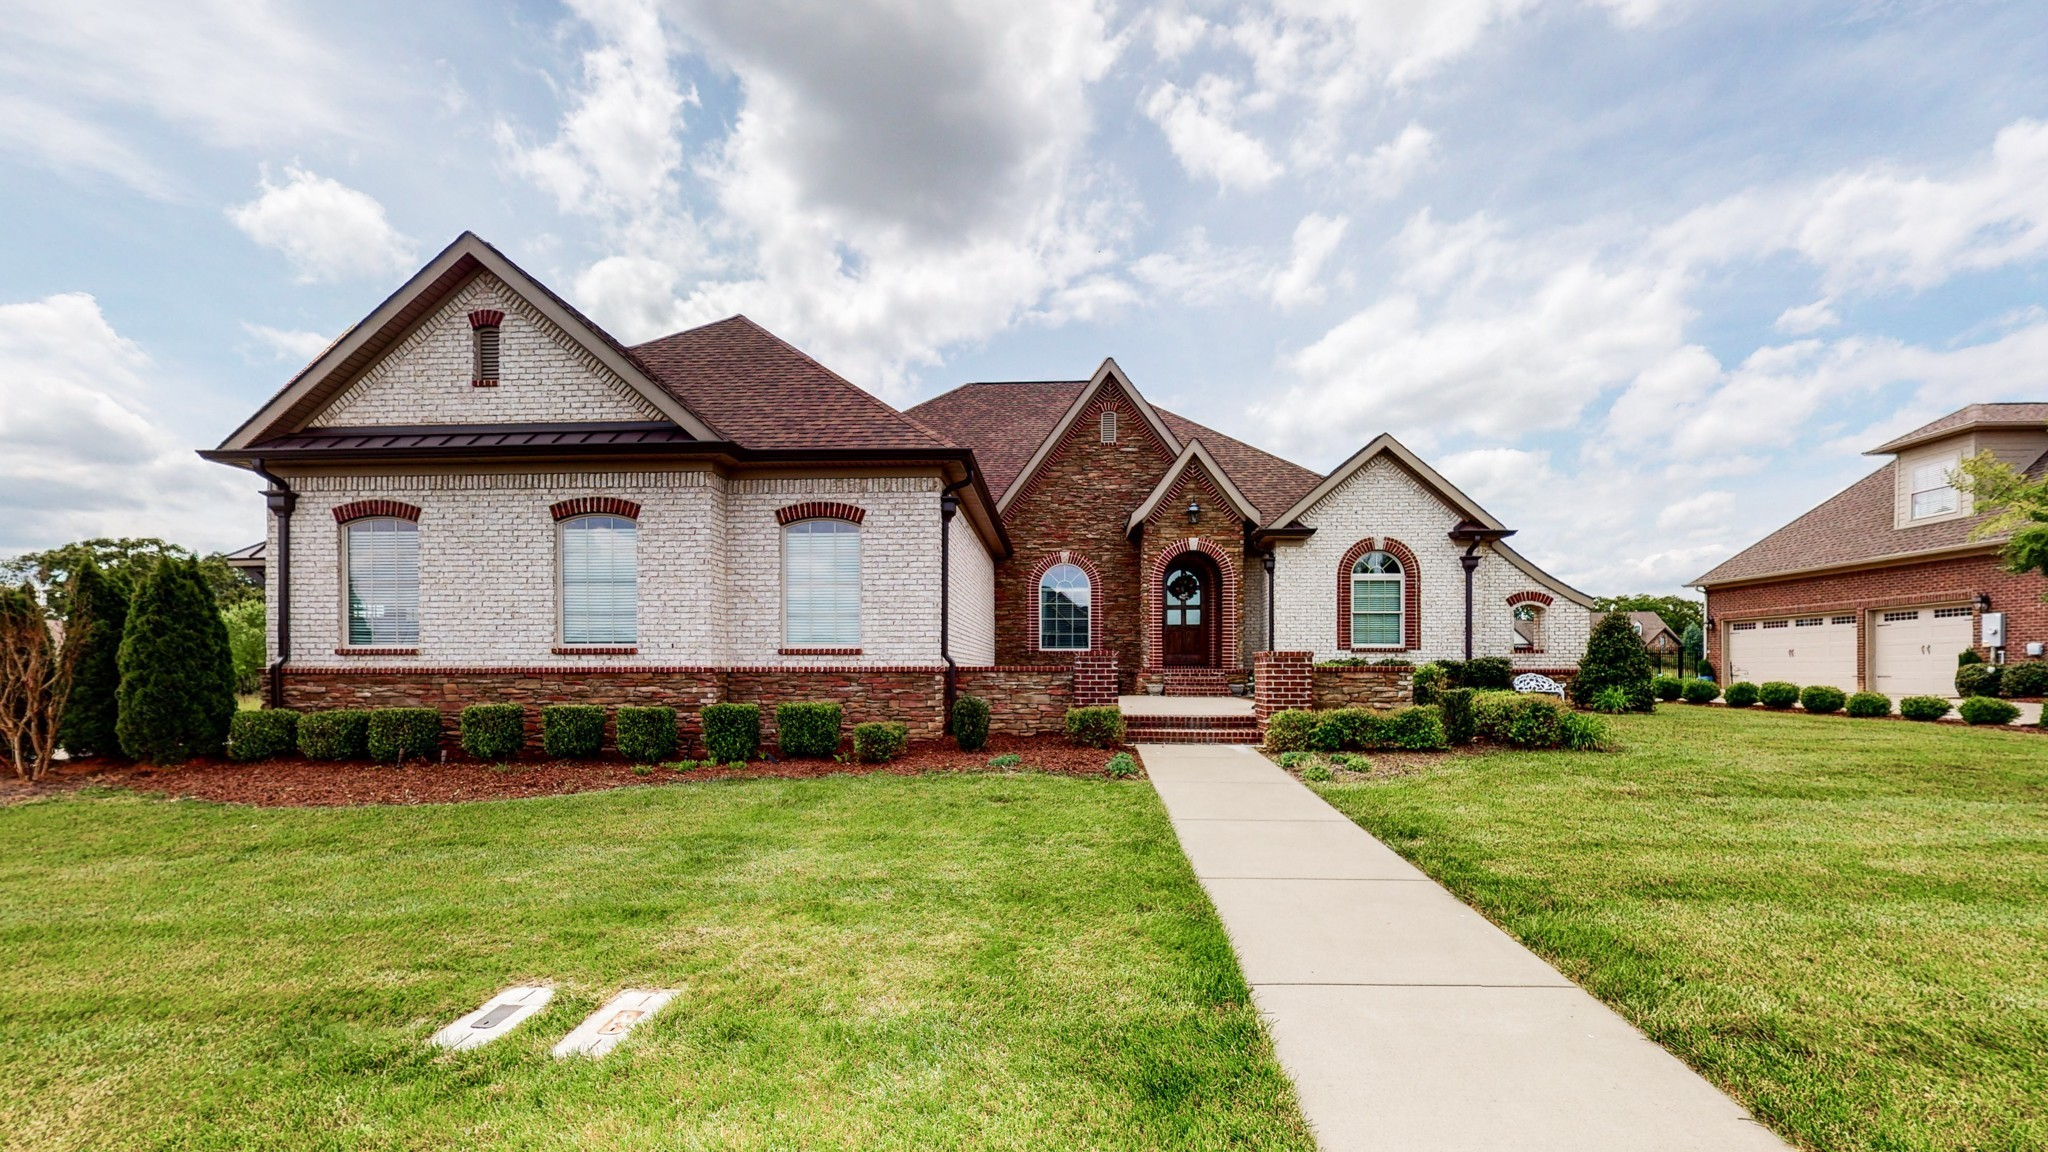 1488 Overlook Pointe Property Photo - Clarksville, TN real estate listing